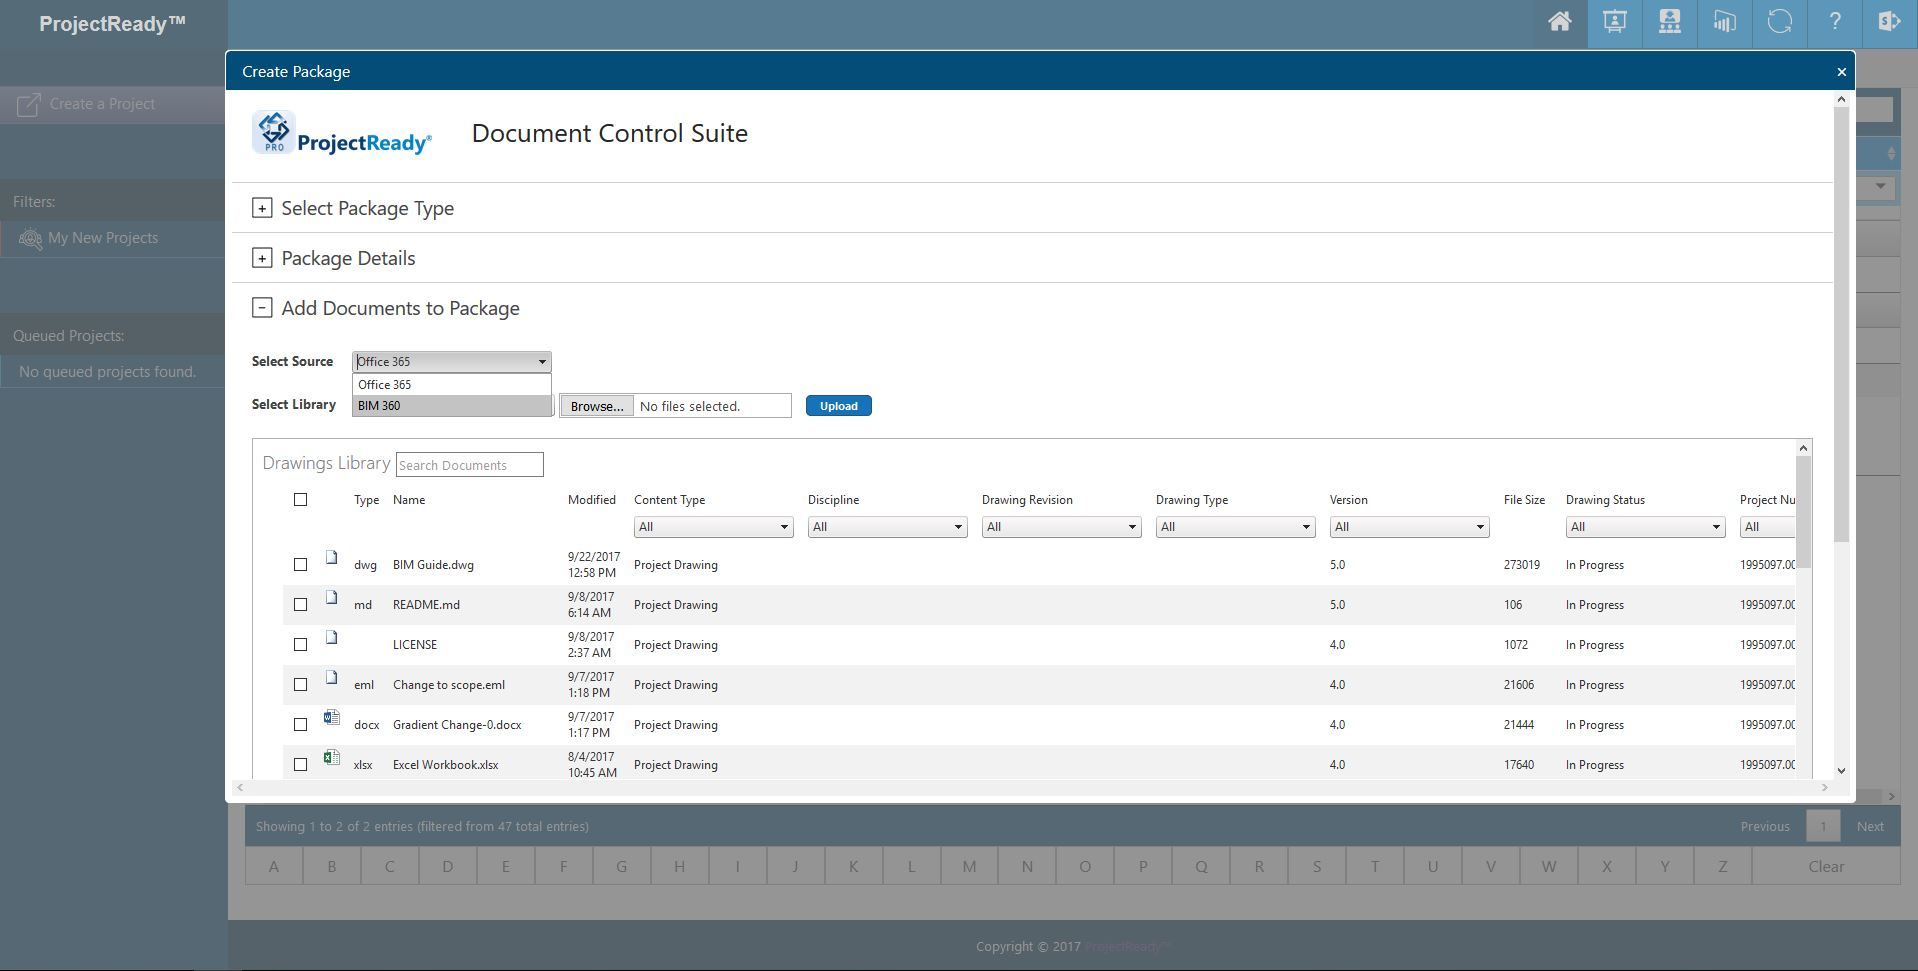 ProjectReady-Central-Screenshot-BIM 360 Source